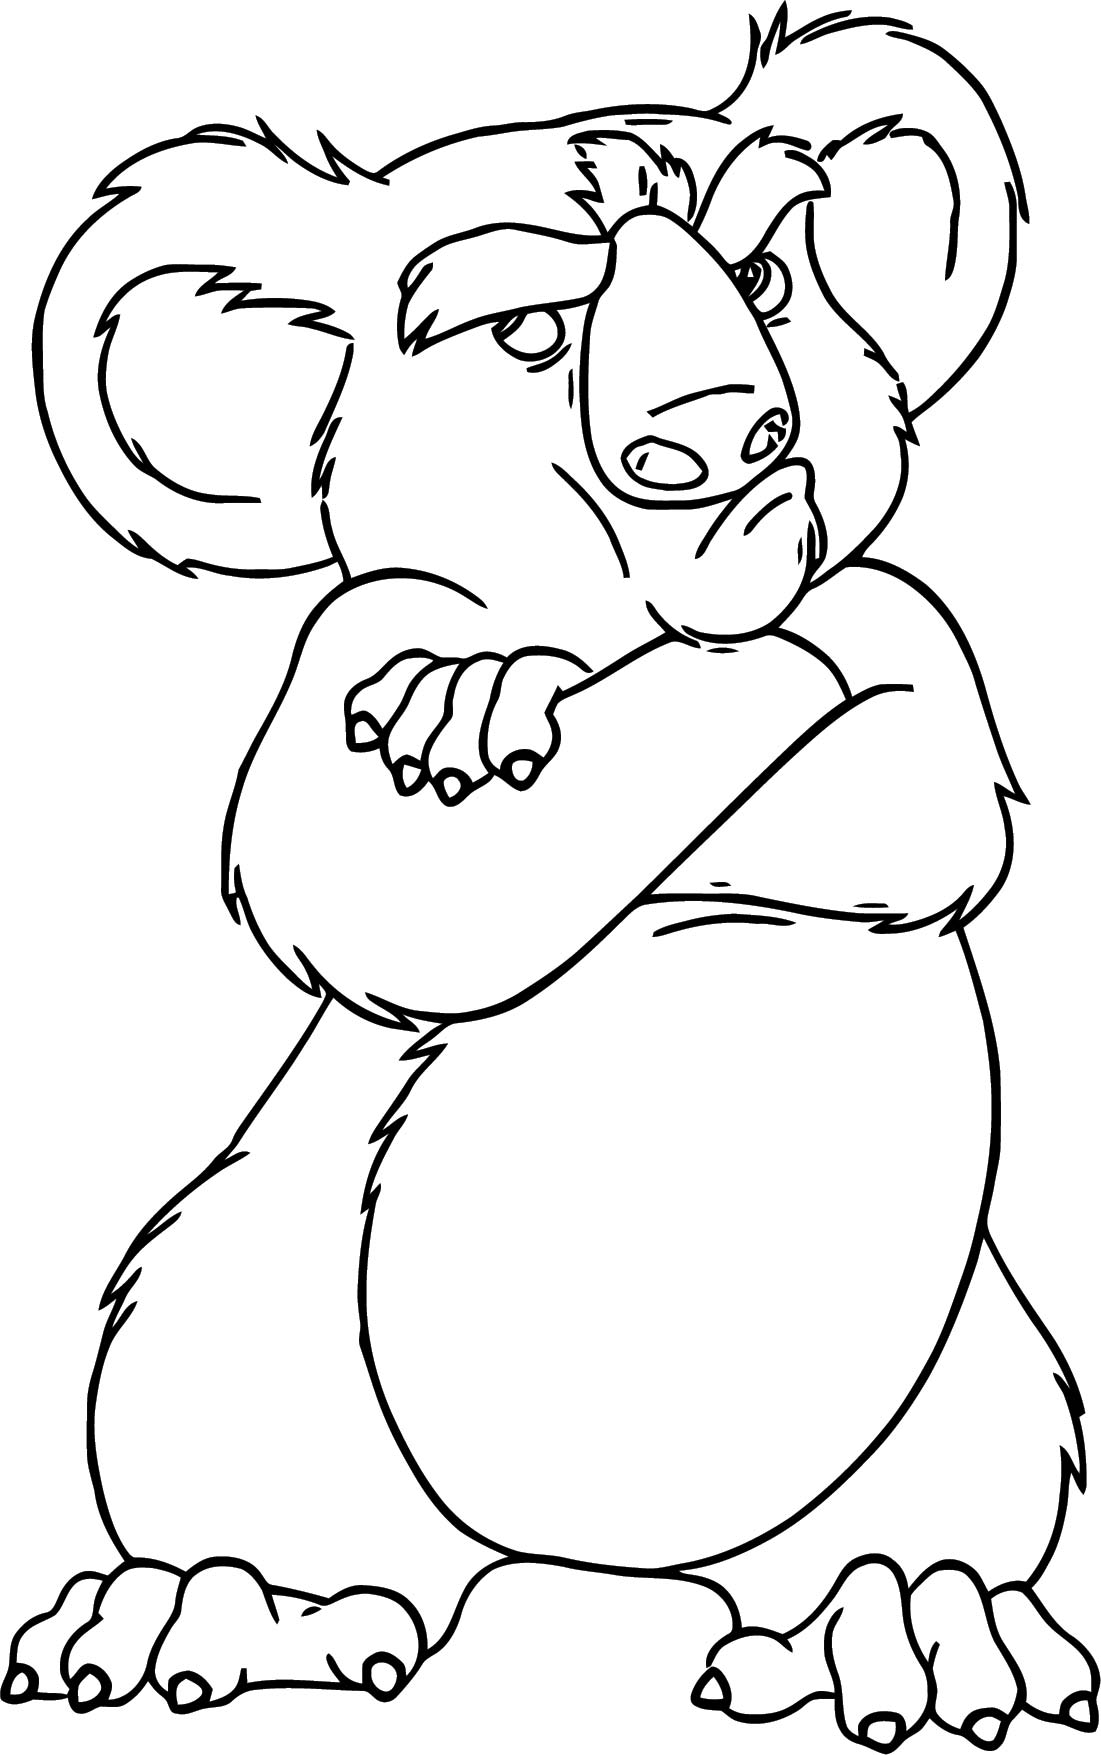 Disney The Wild Coloring Pages 08